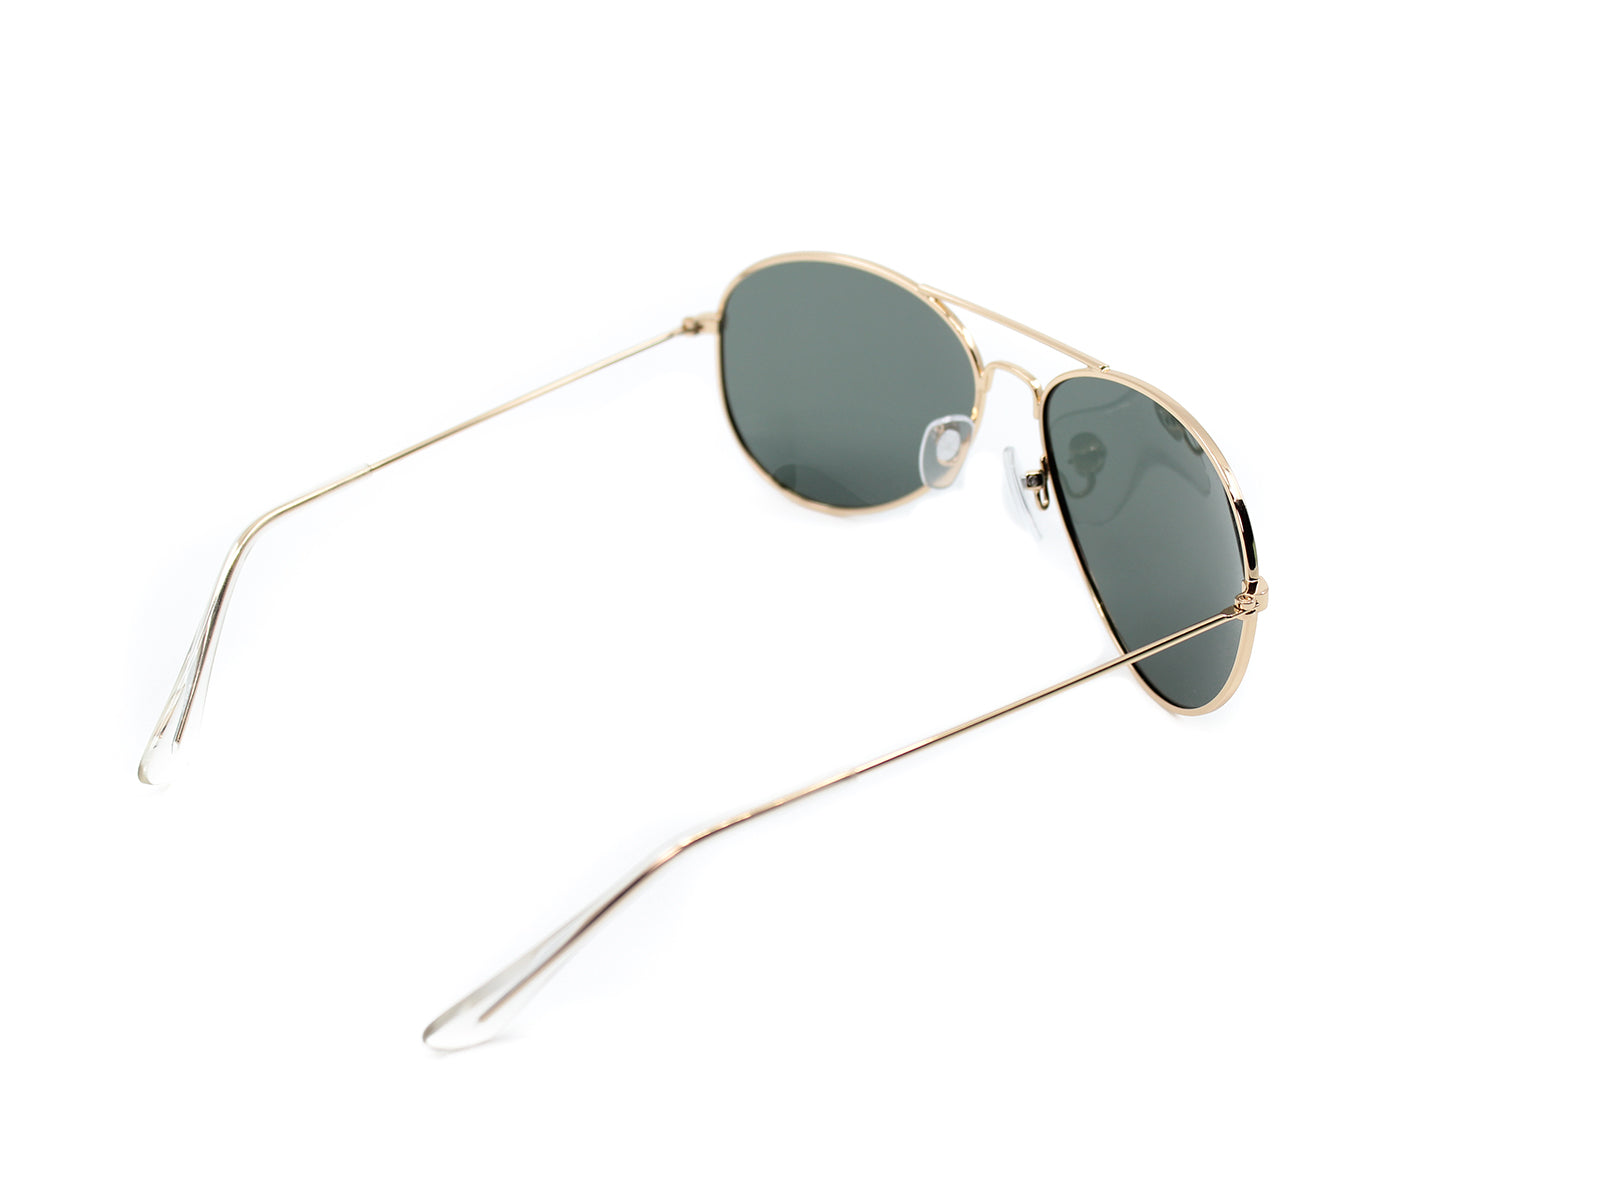 Mavericks - Navigators: Gold / G15 Polarized